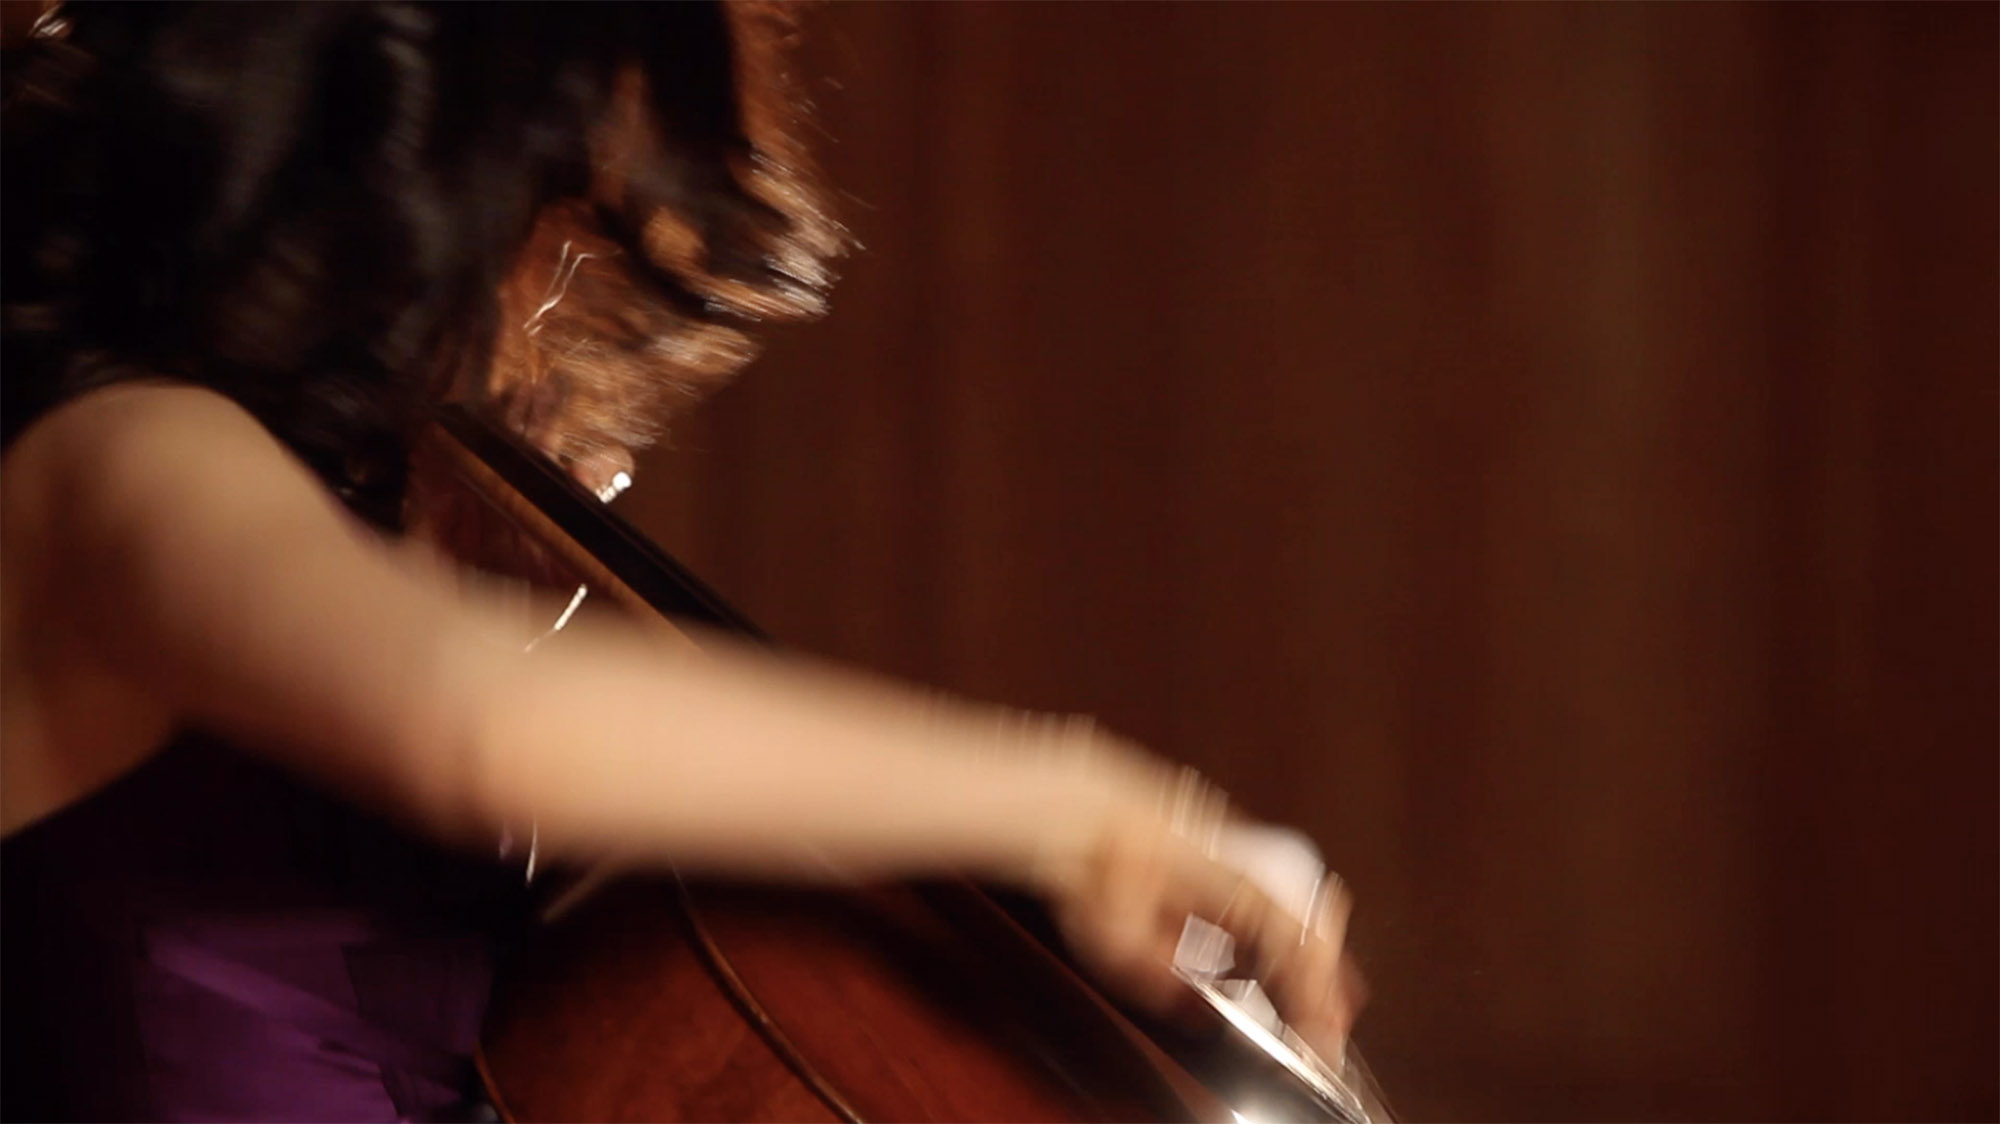 A blurry shot of Inbal Segev playing cello while sitting down and wearing a purple top.